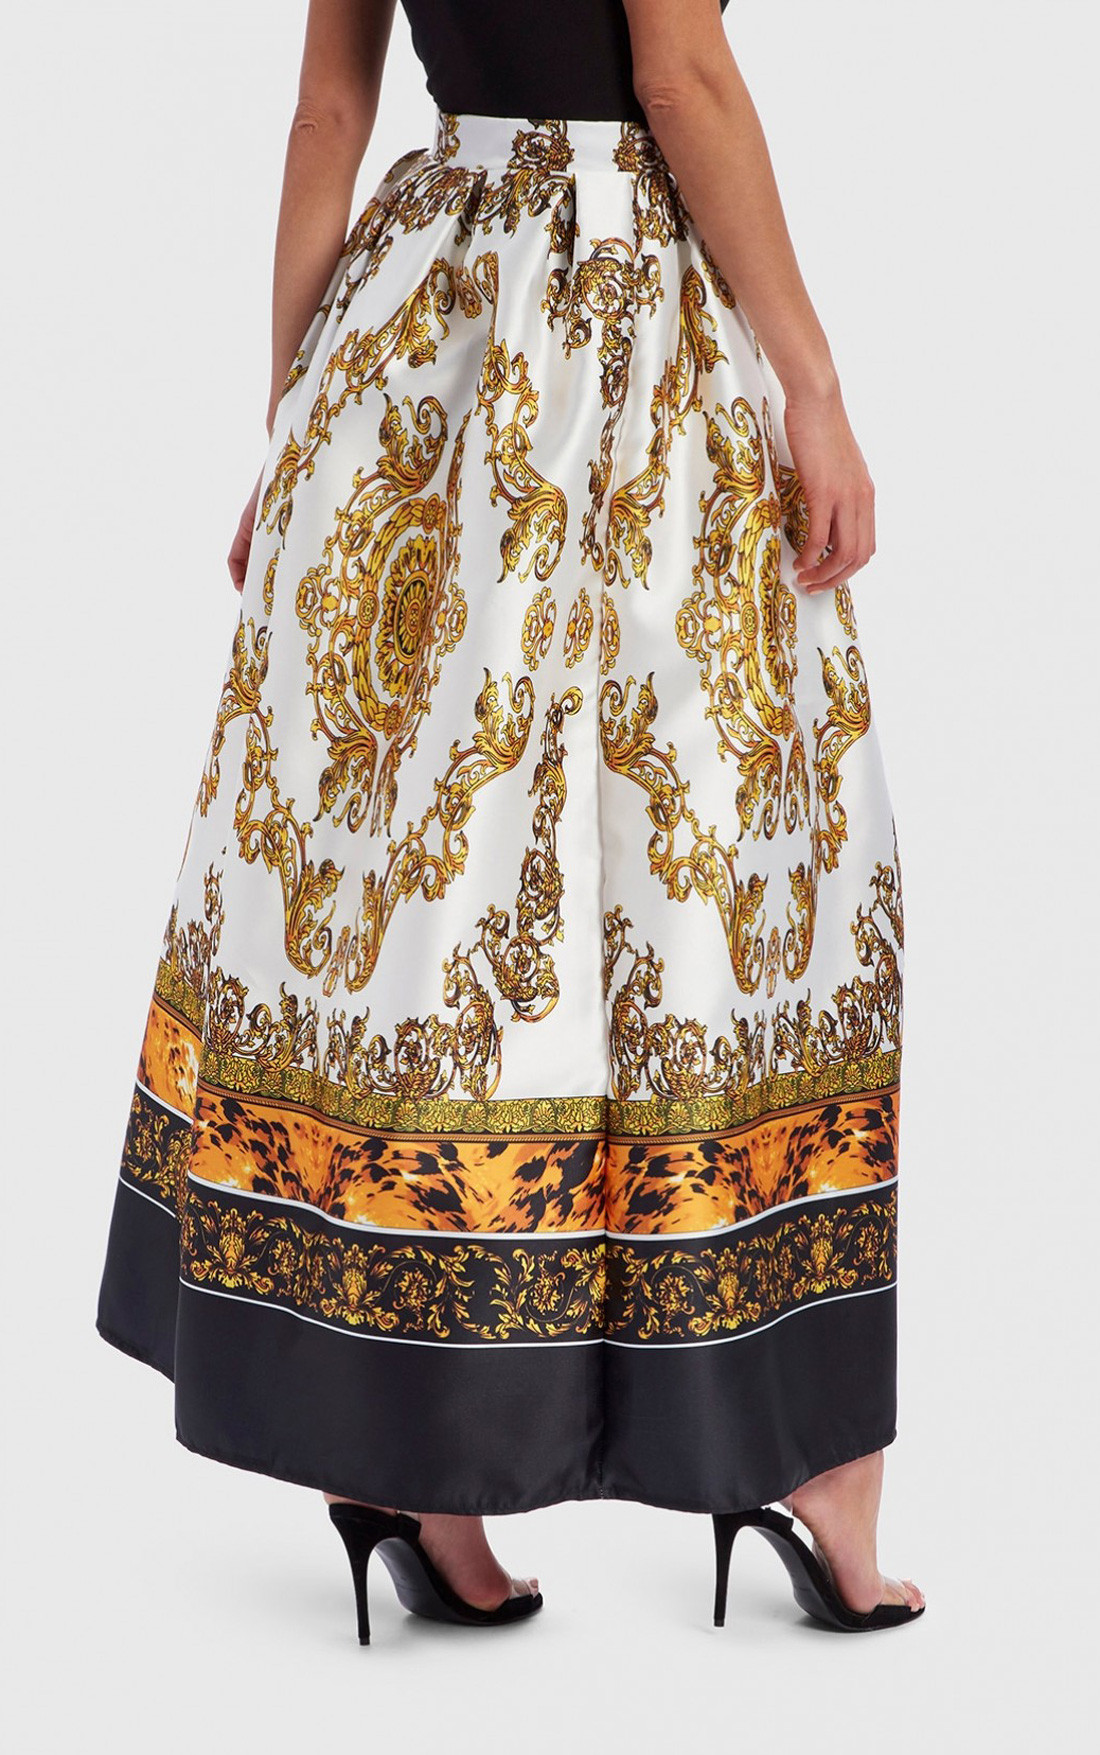 Forever Unique - Baroque Print Maxi Skirt (EX18259)